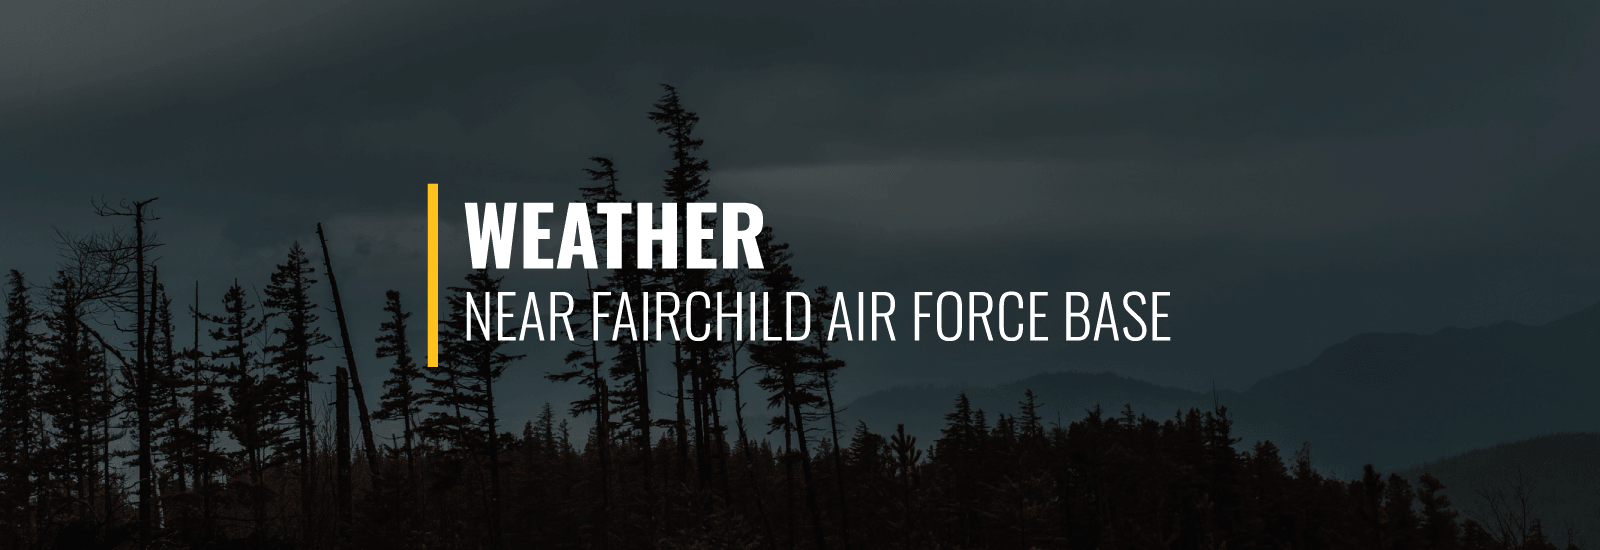 Fairchild AFB Weather